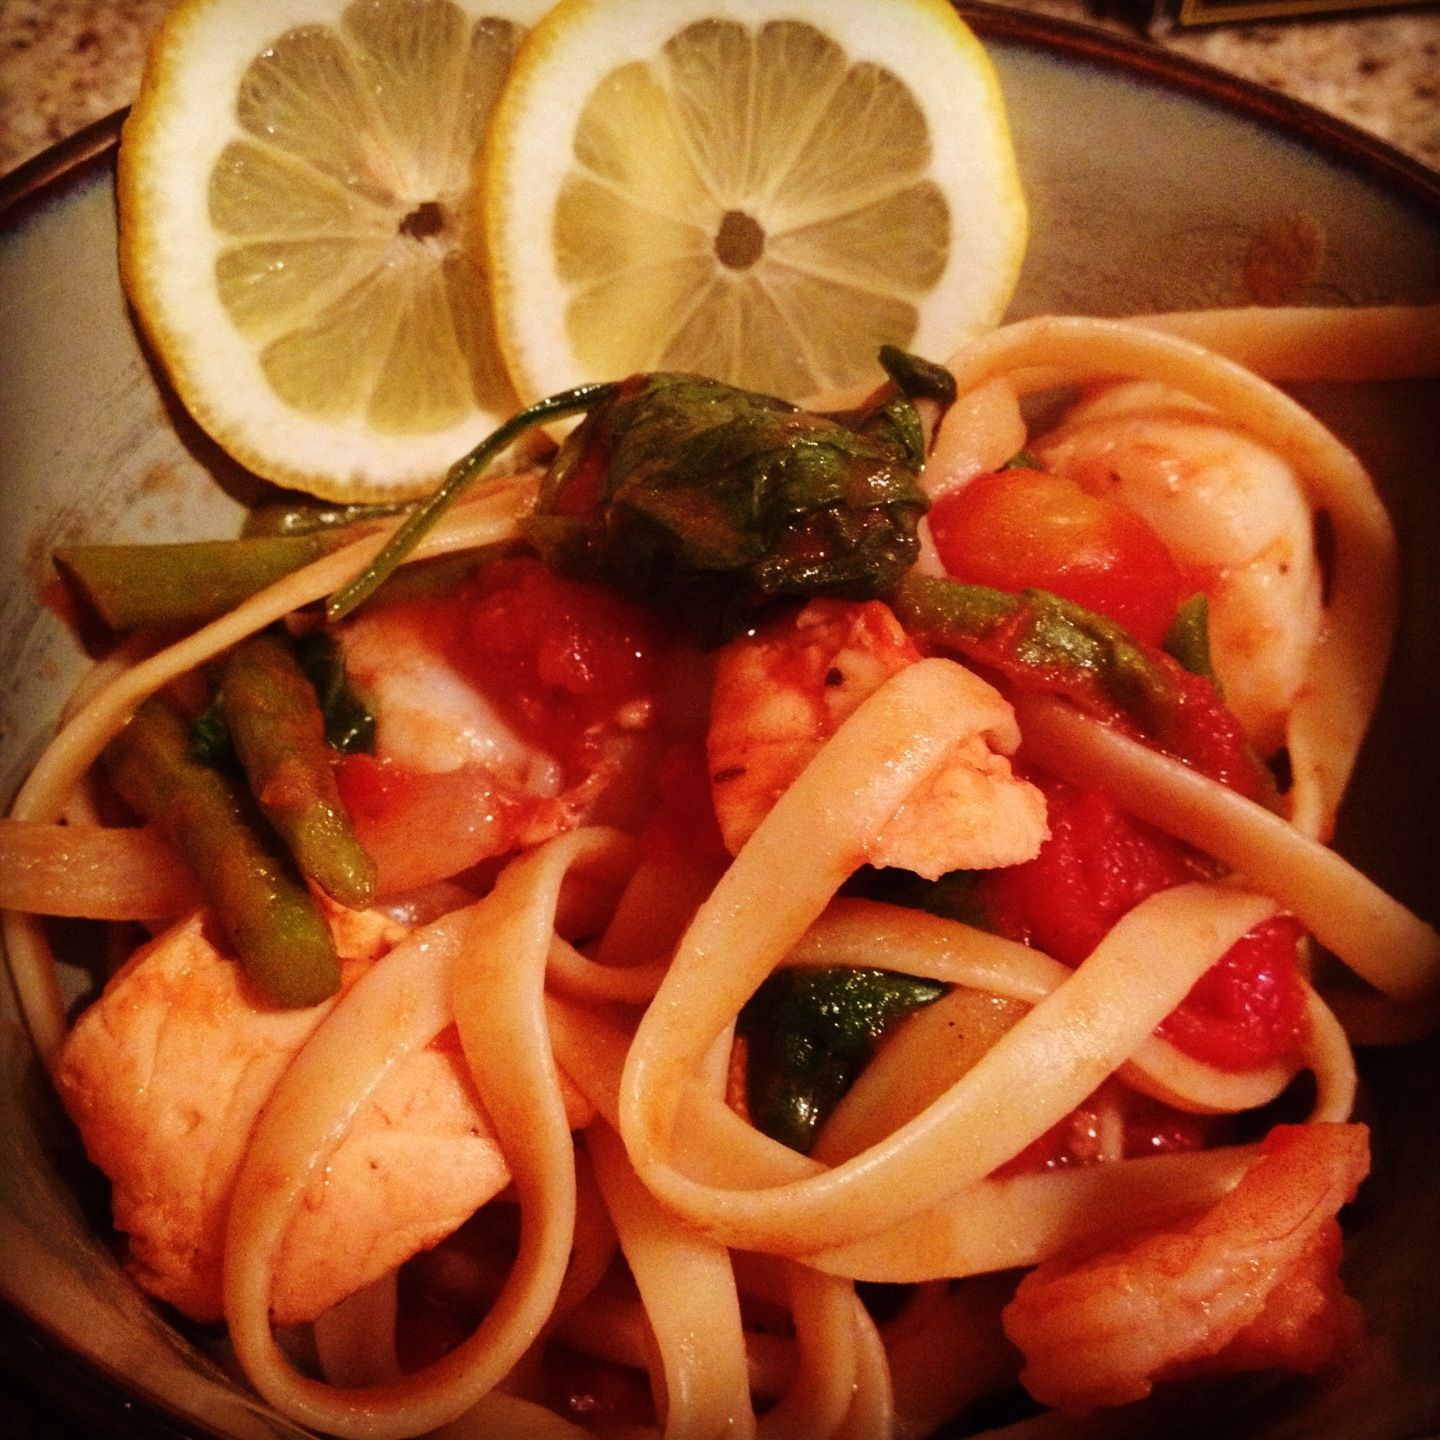 Seafood pasta! Made with shrimp, salmon, and scallops plus spinach and asparagus in a light tomato sauce! Easy, healthy, and yummy!